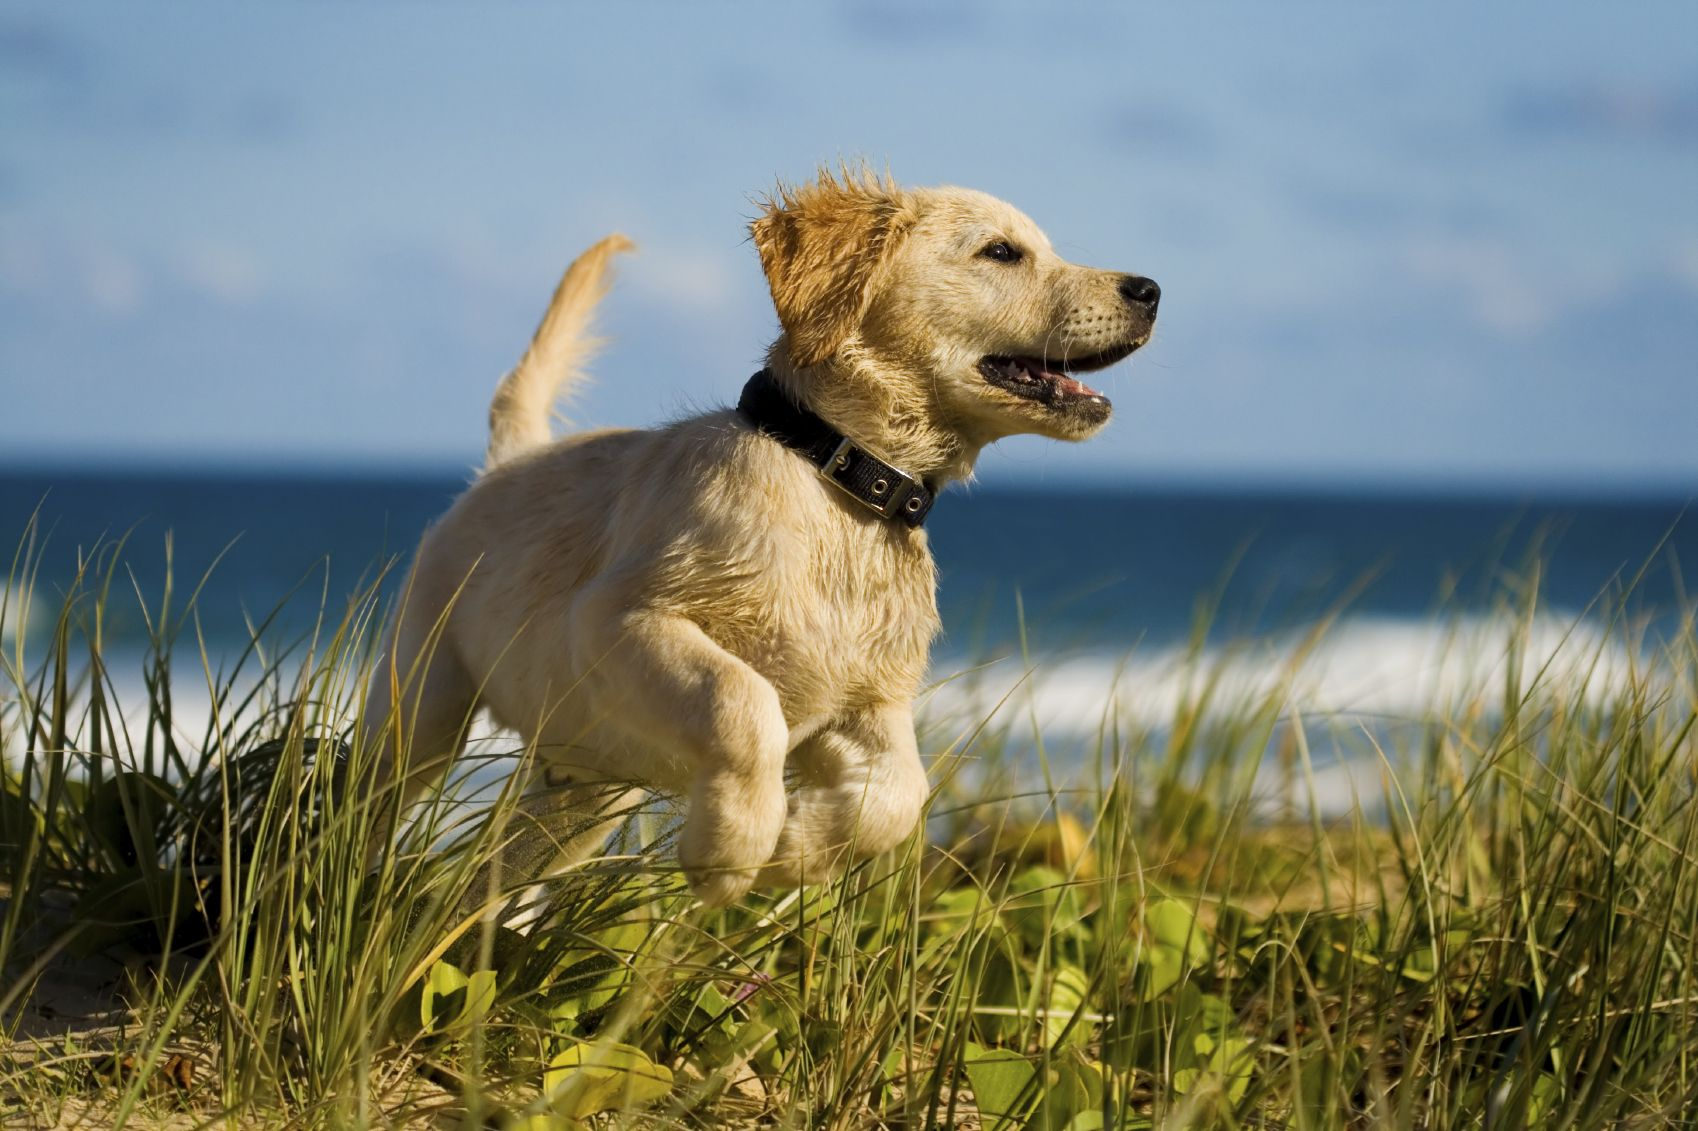 Keep Your Pet Safe by Micro Chipping! Retriever puppy